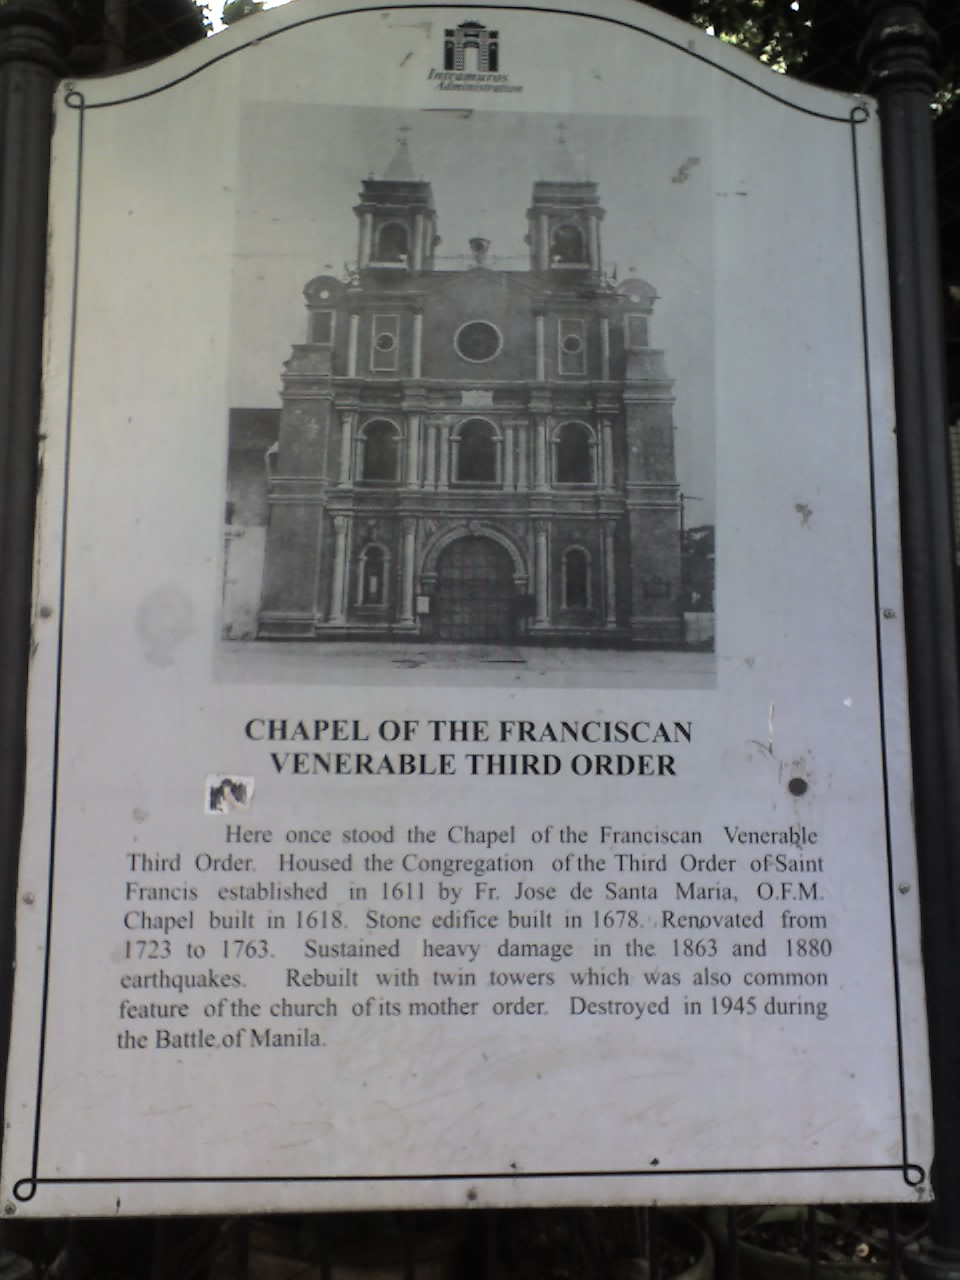 CHAPEL OF THE FRANCISCAN VENERABLE THIRD ORDER